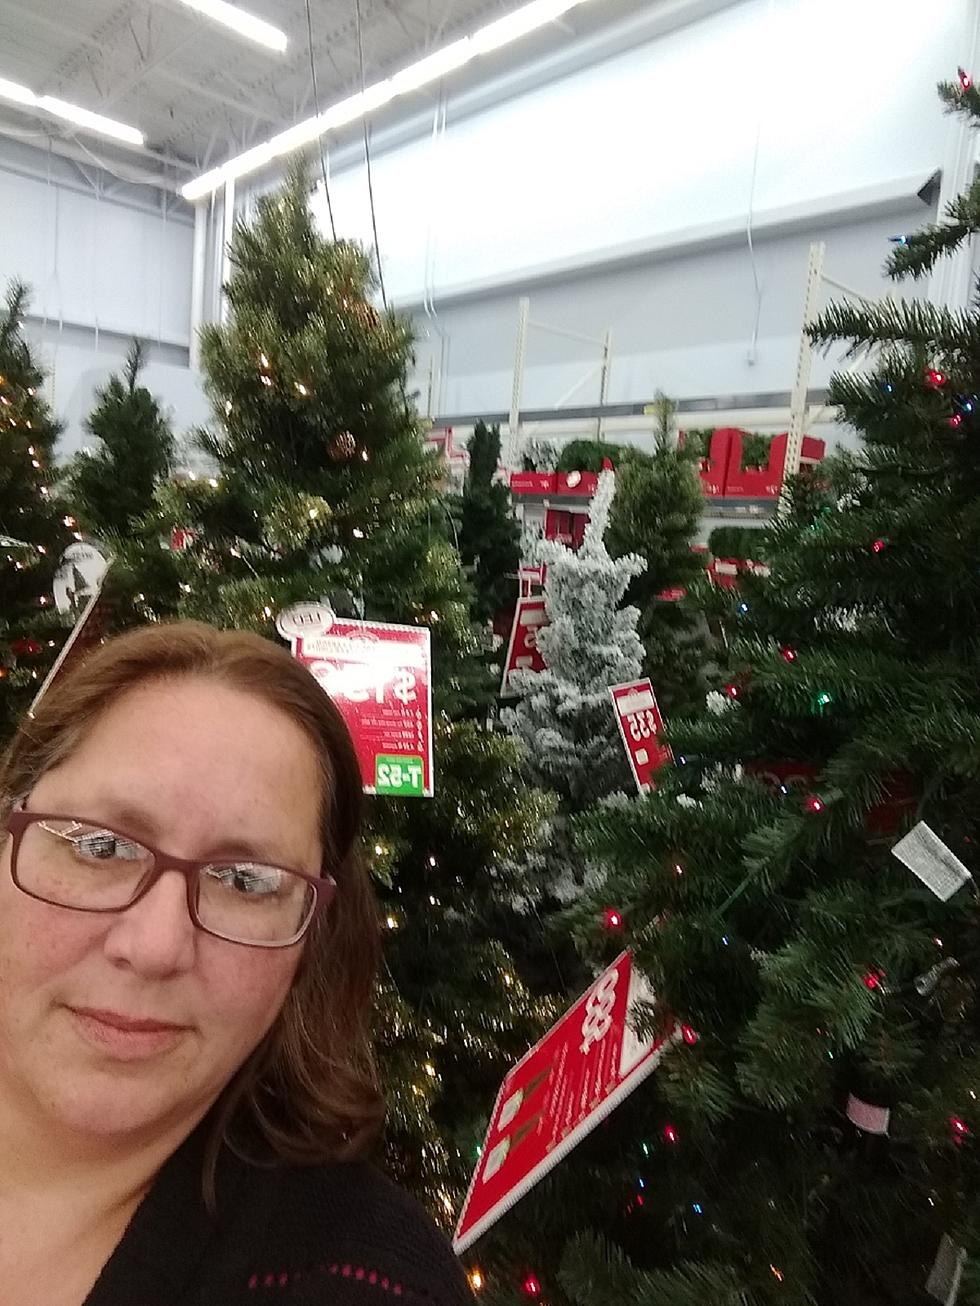 Too Early For Christmas.How Early Is Too Early For Christmas Merchandise